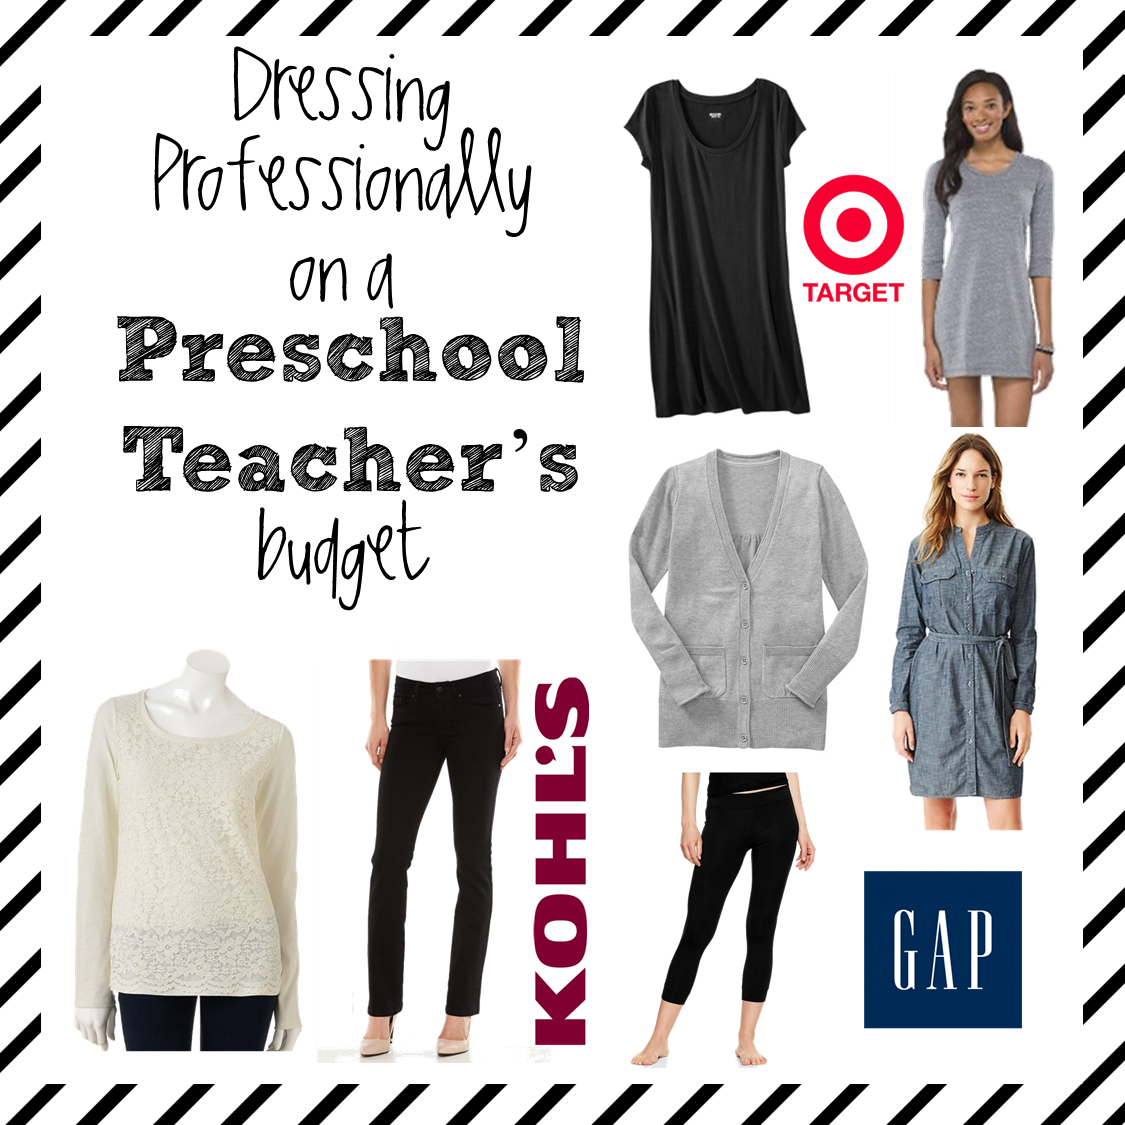 Target I Love S Clothing Because It Is Super Affordable But Still Very Cute Their Pieces Are Clic With A Trendy Twist